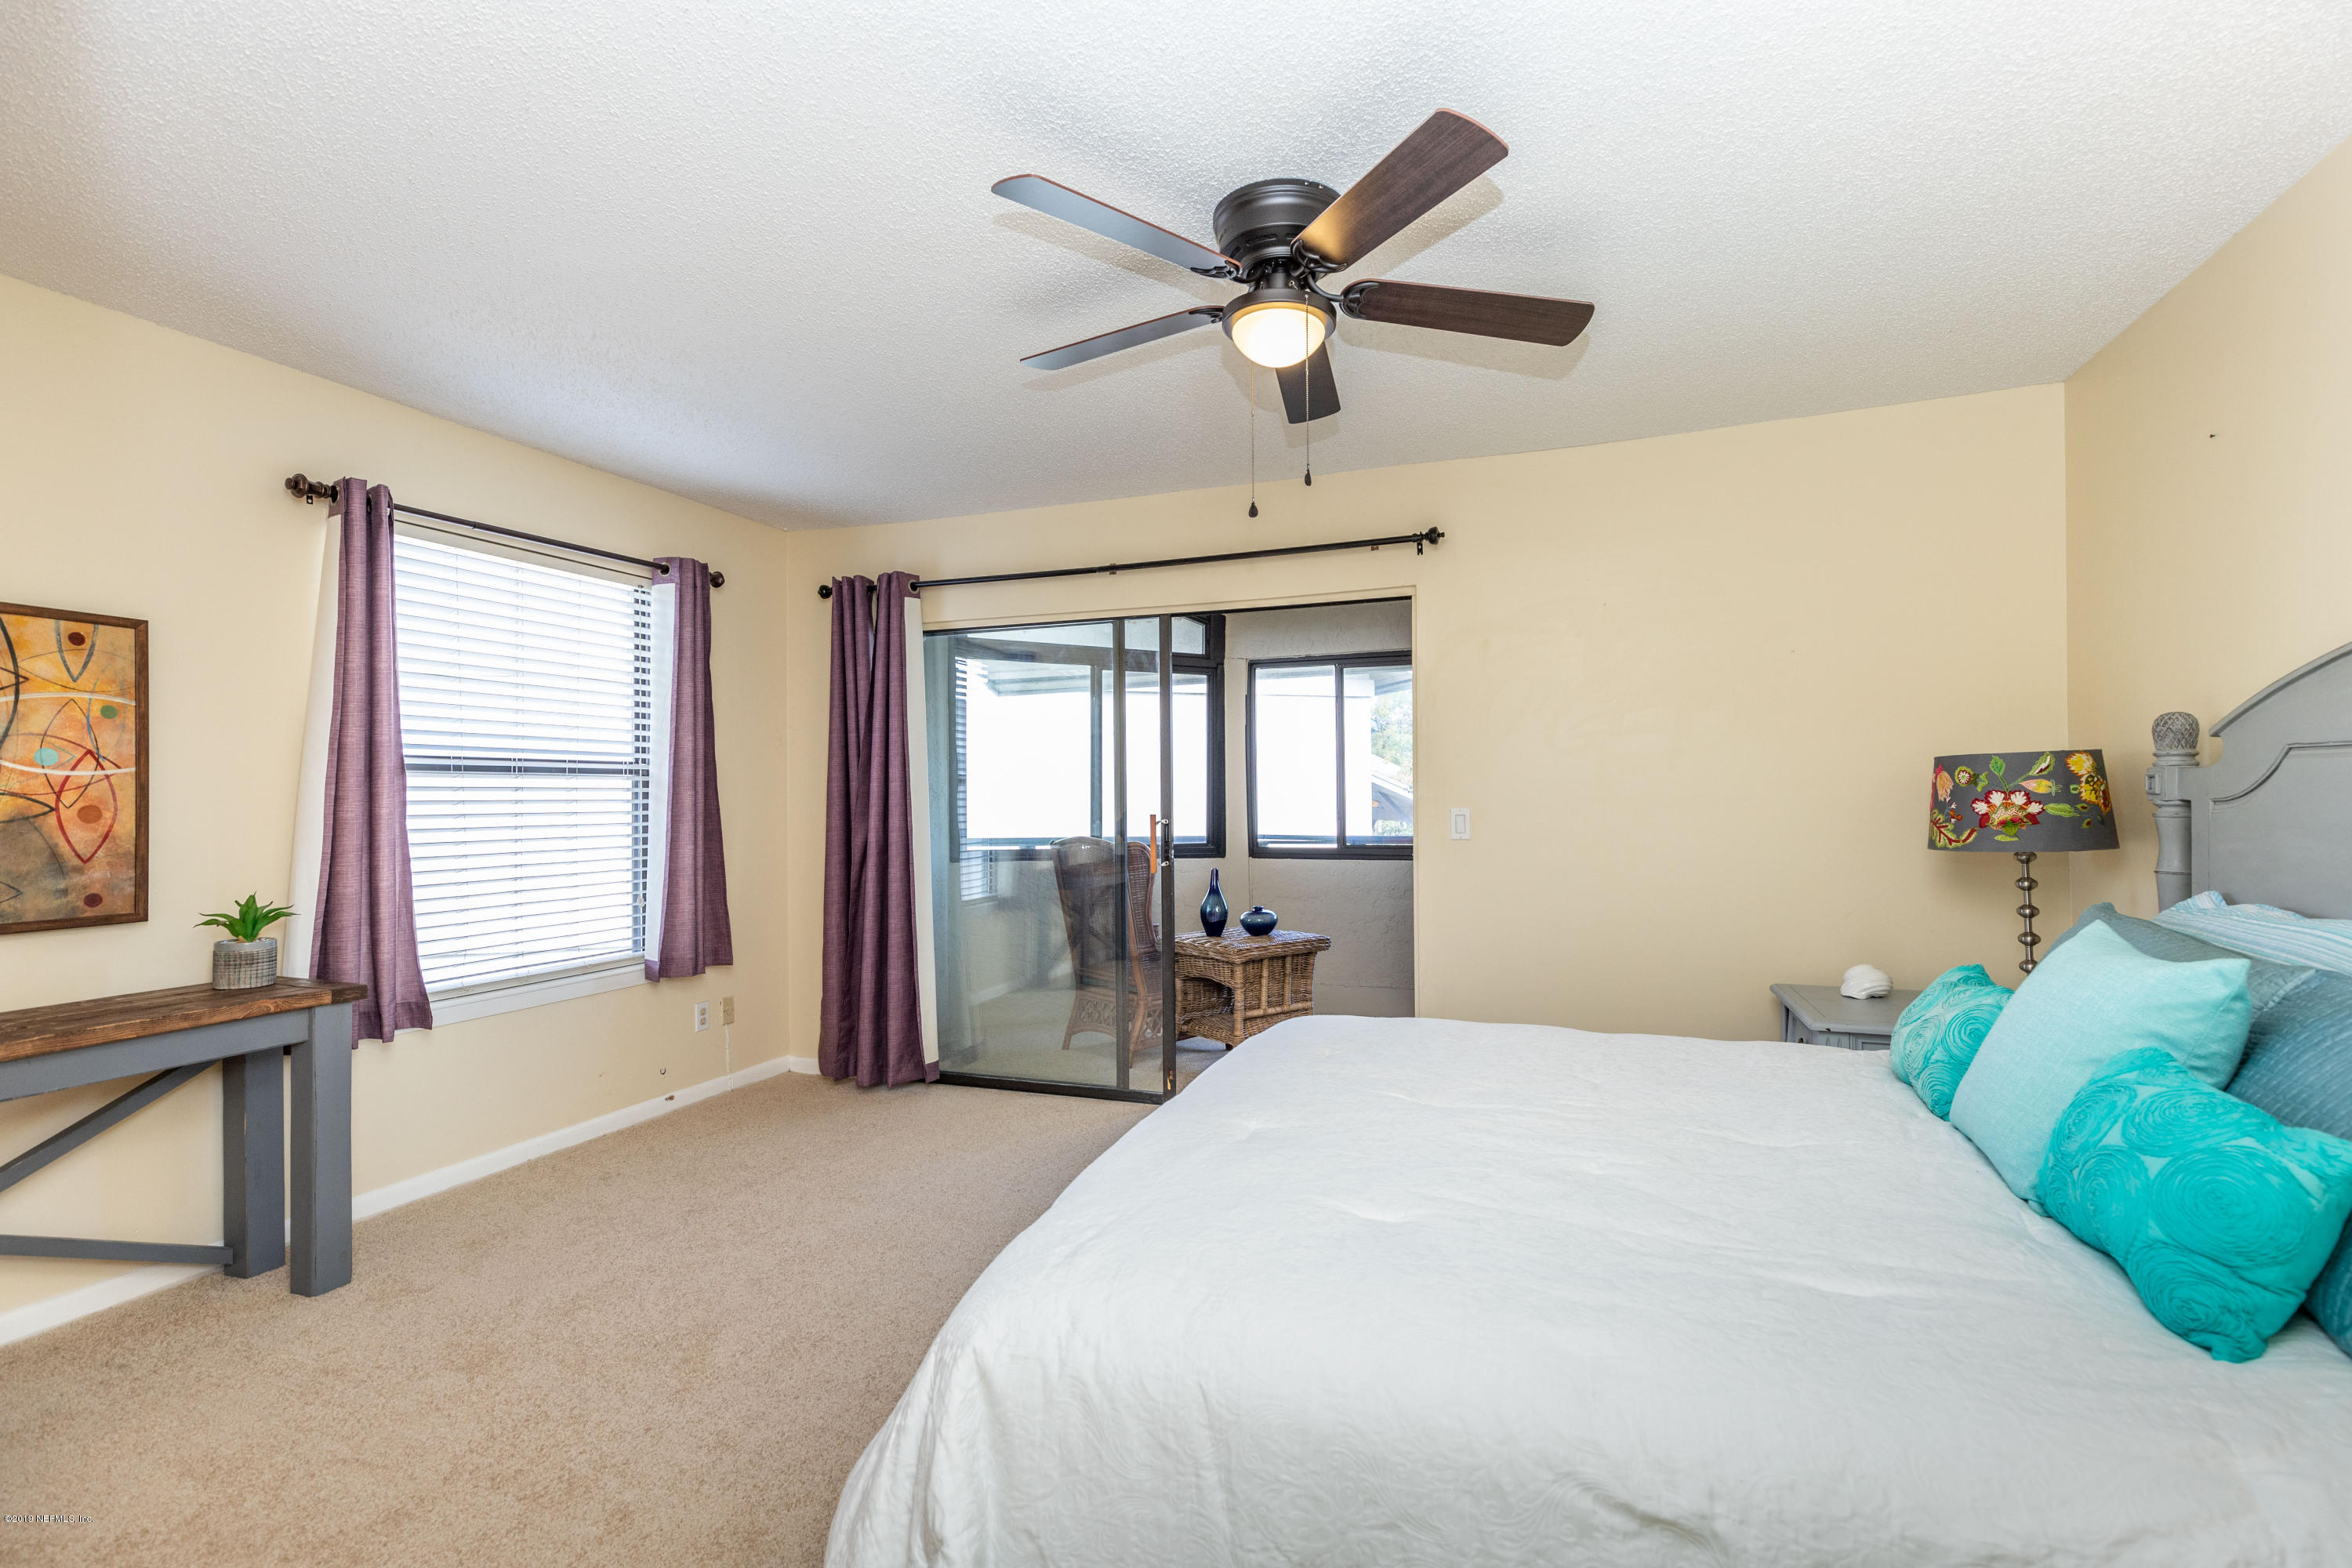 5615 SAN JUAN- JACKSONVILLE- FLORIDA 32210, 2 Bedrooms Bedrooms, ,2 BathroomsBathrooms,Condo,For sale,SAN JUAN,1021096